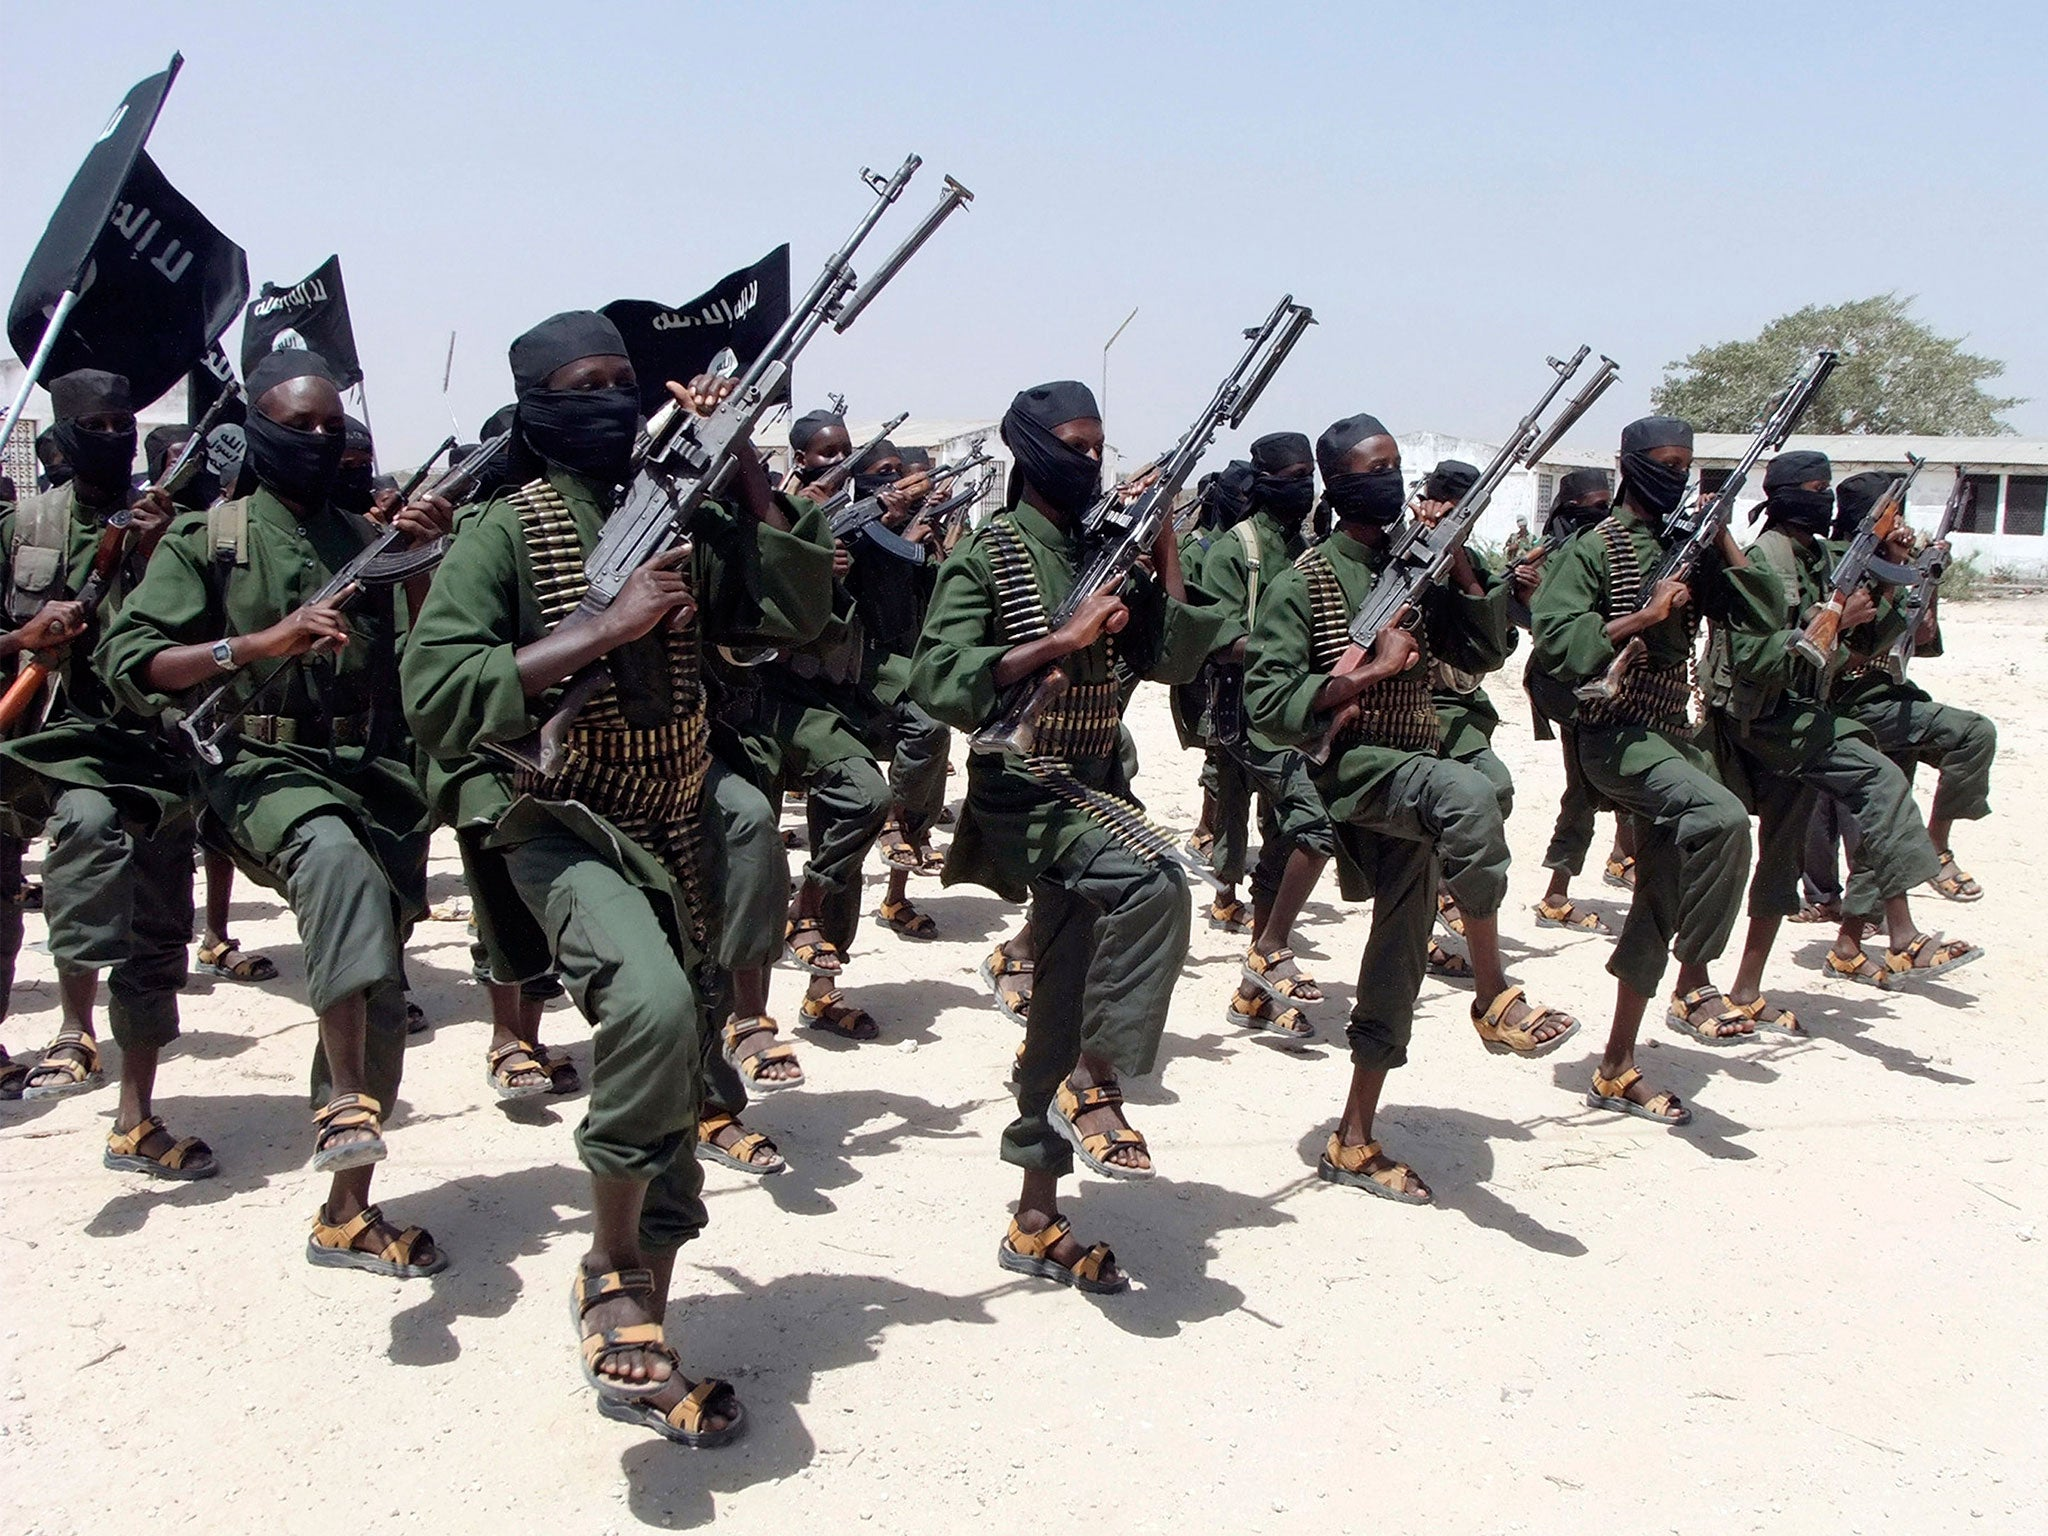 Sub-Saharan Africa becoming new battleground against violent extremism as jihad 'goes south'